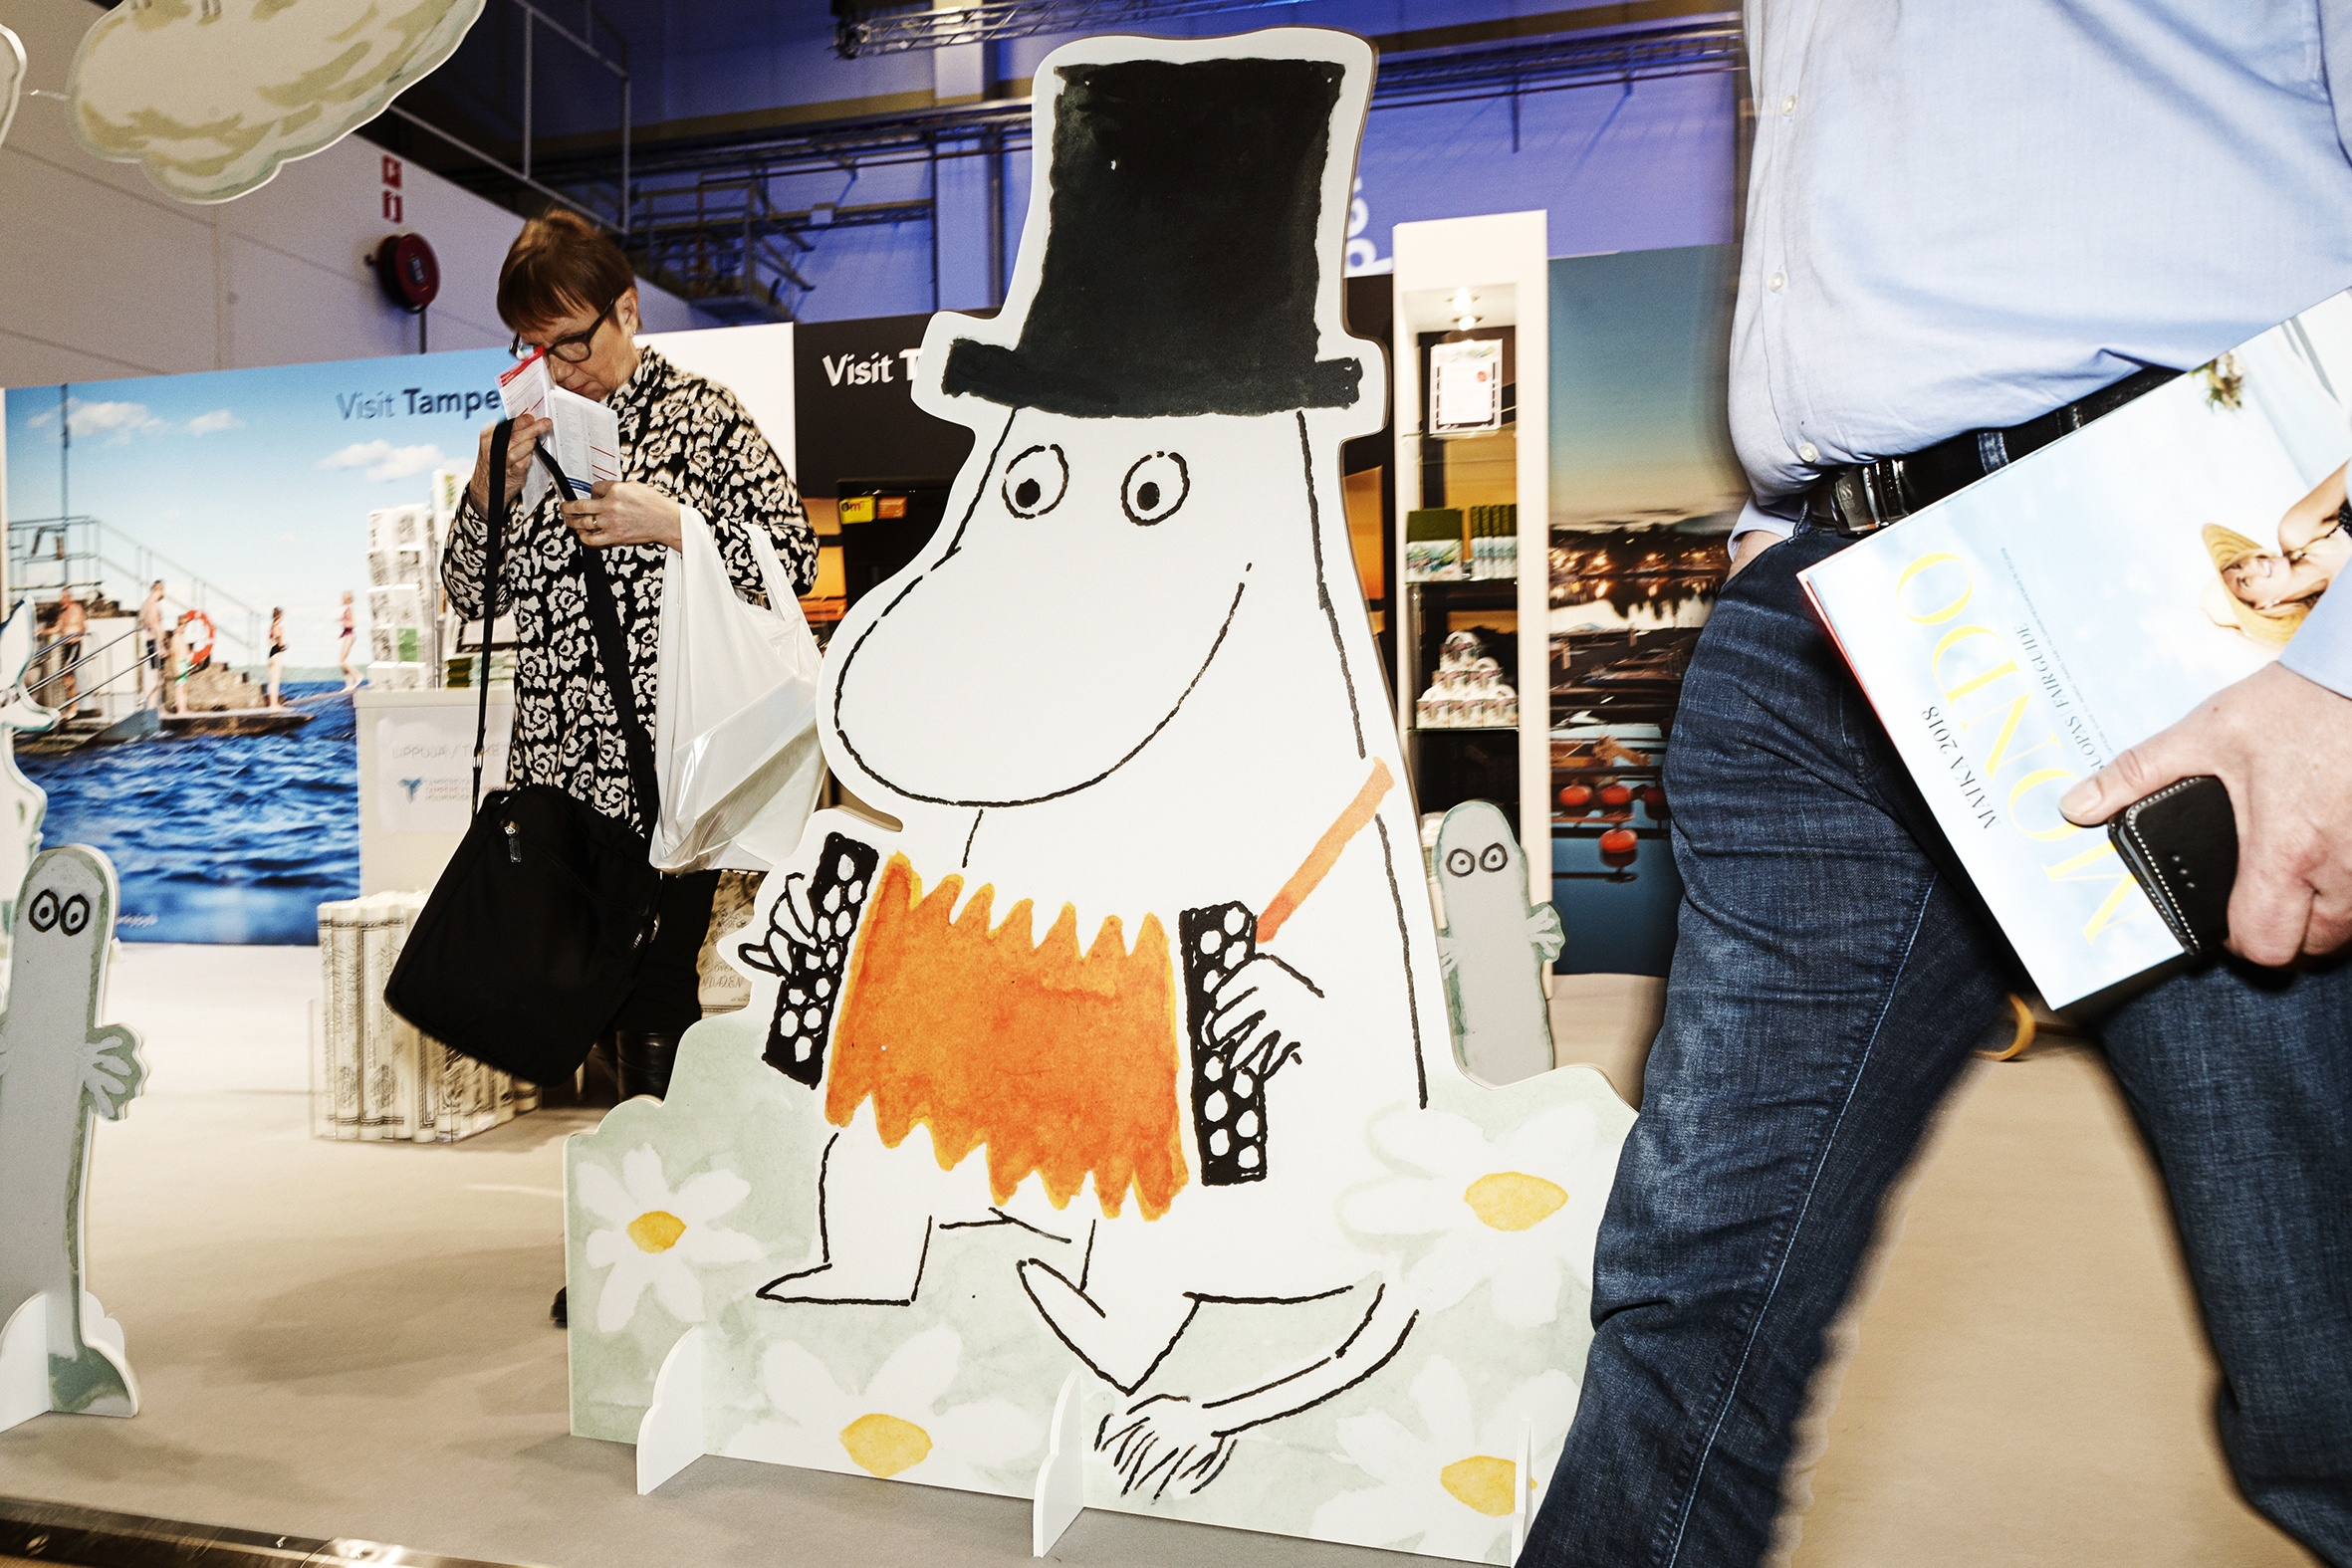 The city of Tampere, with its recently established Moomin Museum, and Naantali, the home town of Moomin World, naturally featured Moomins at their stand. Nothing wrong with that – they can easily be counted as some of the most famous global notabilities to have come from Finland.